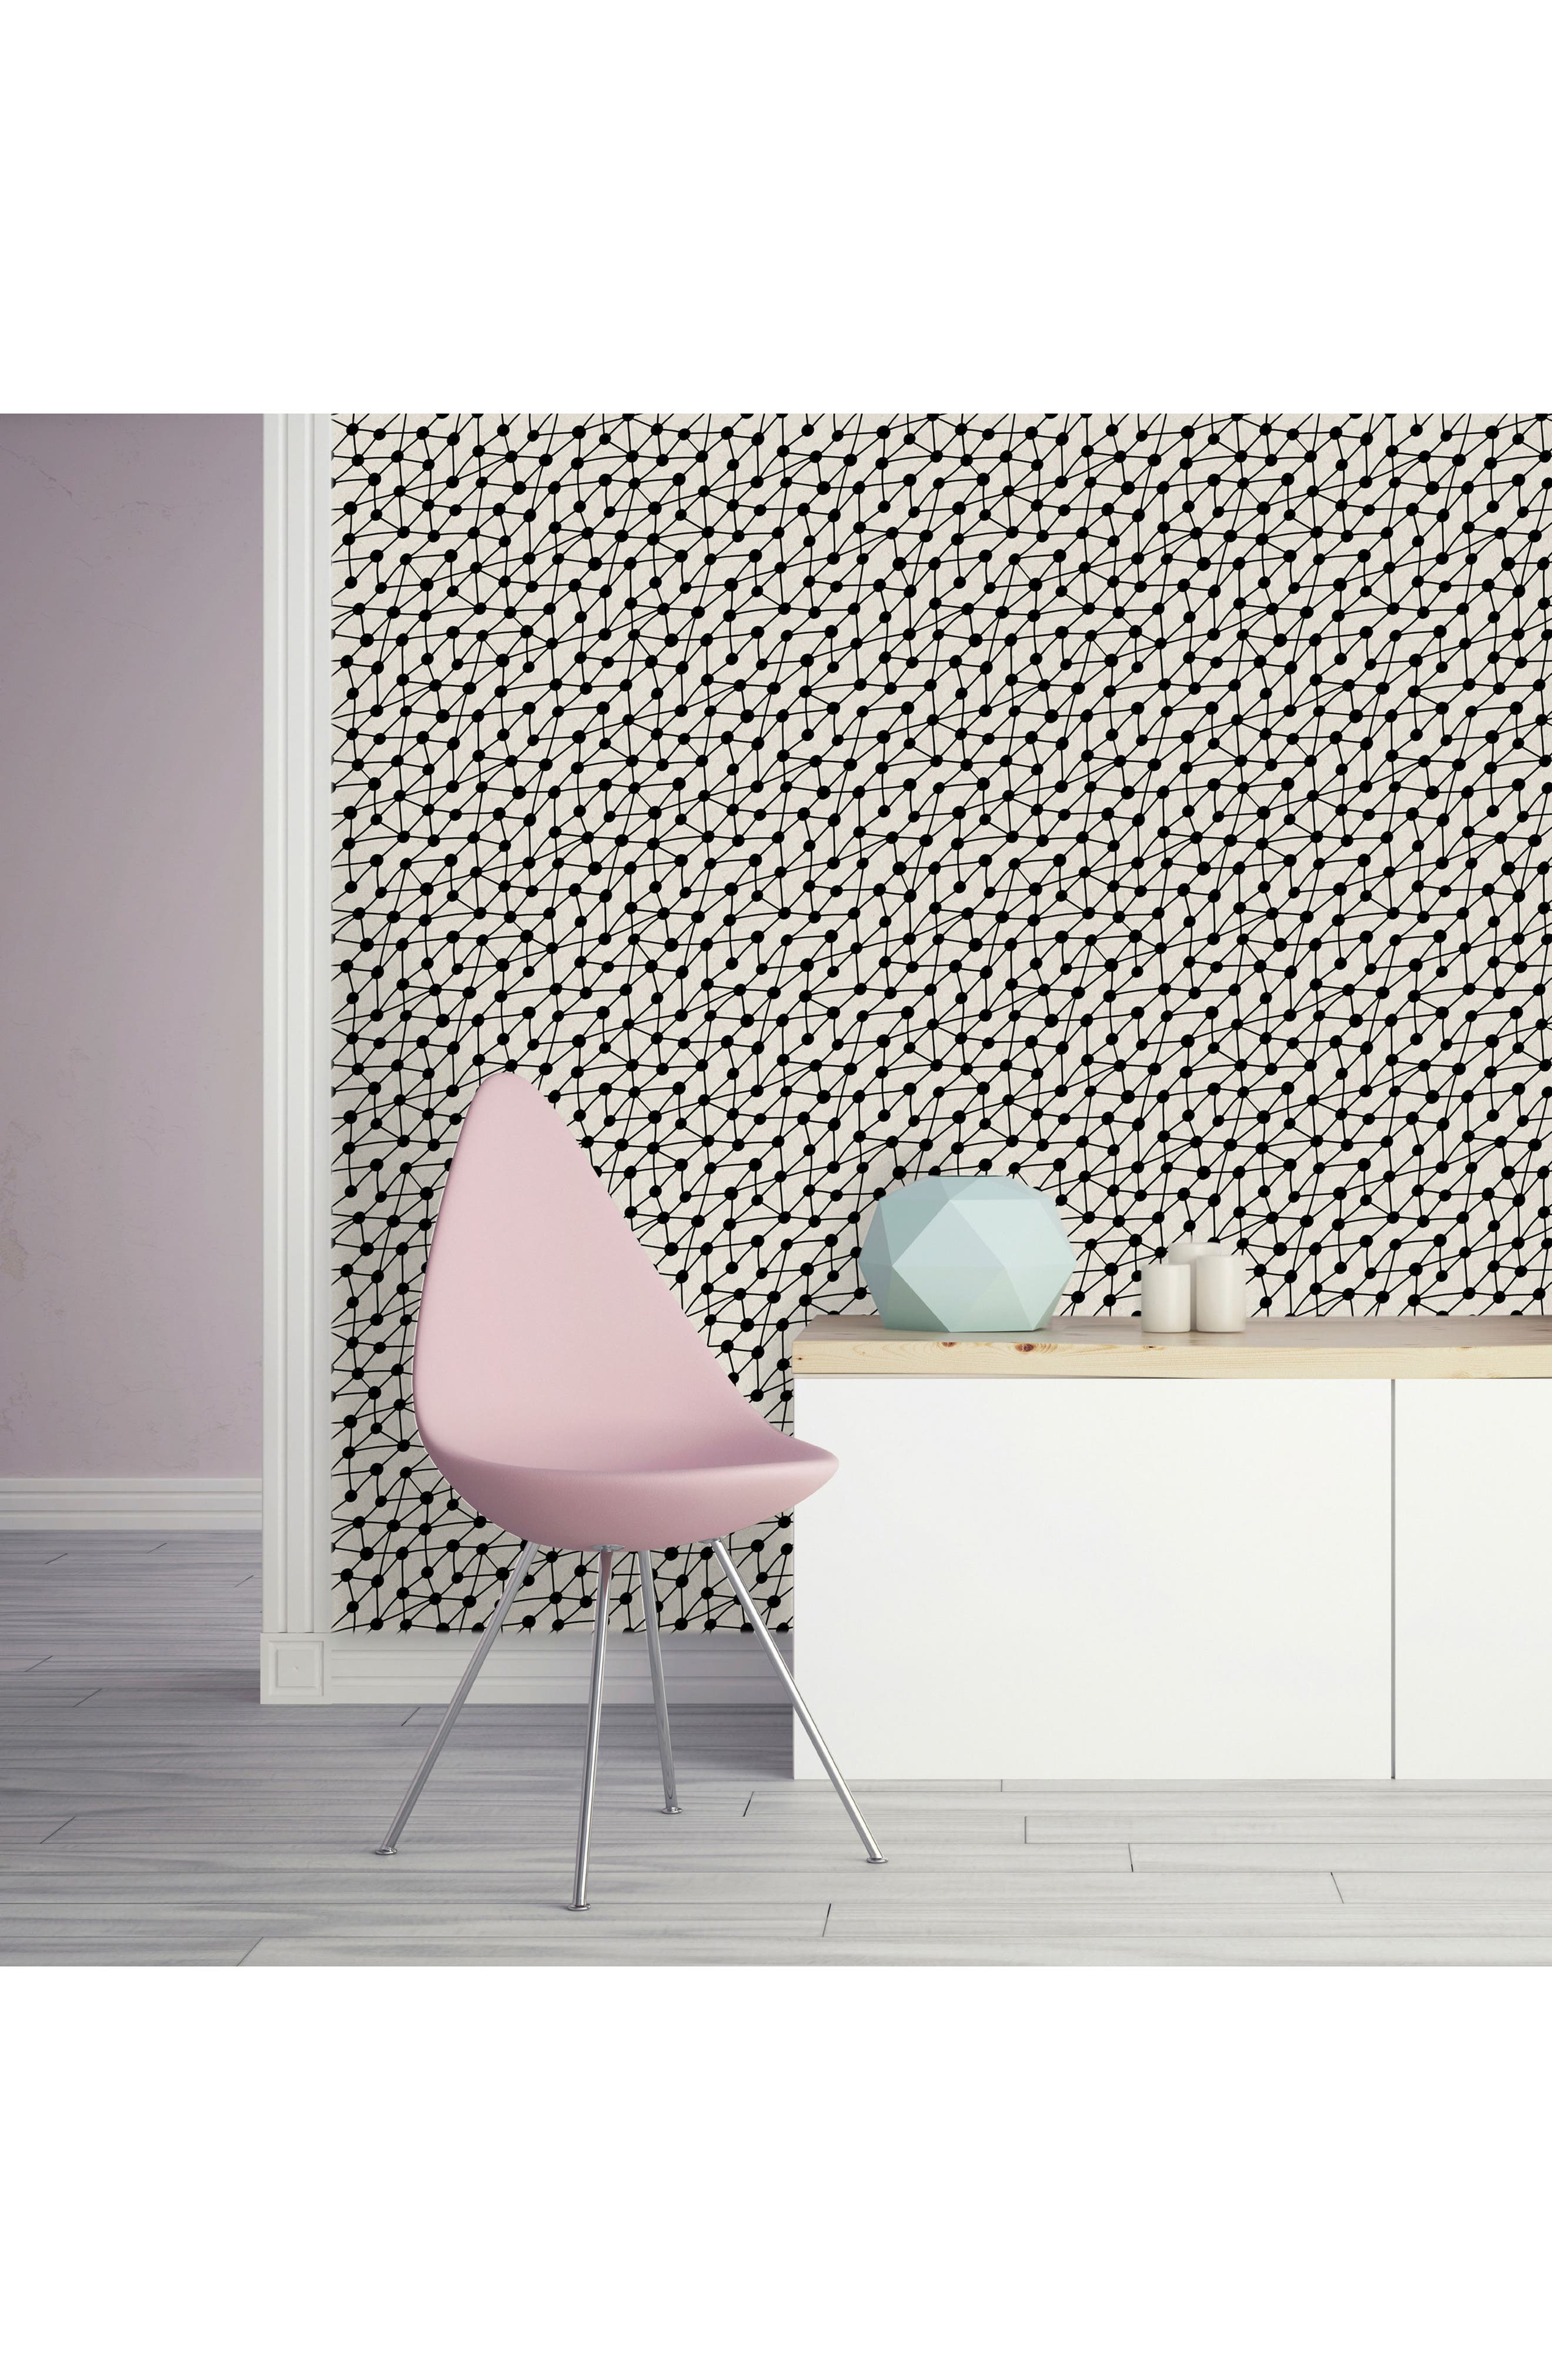 Connect Self-Adhesive Vinyl Wallpaper,                             Alternate thumbnail 2, color,                             001